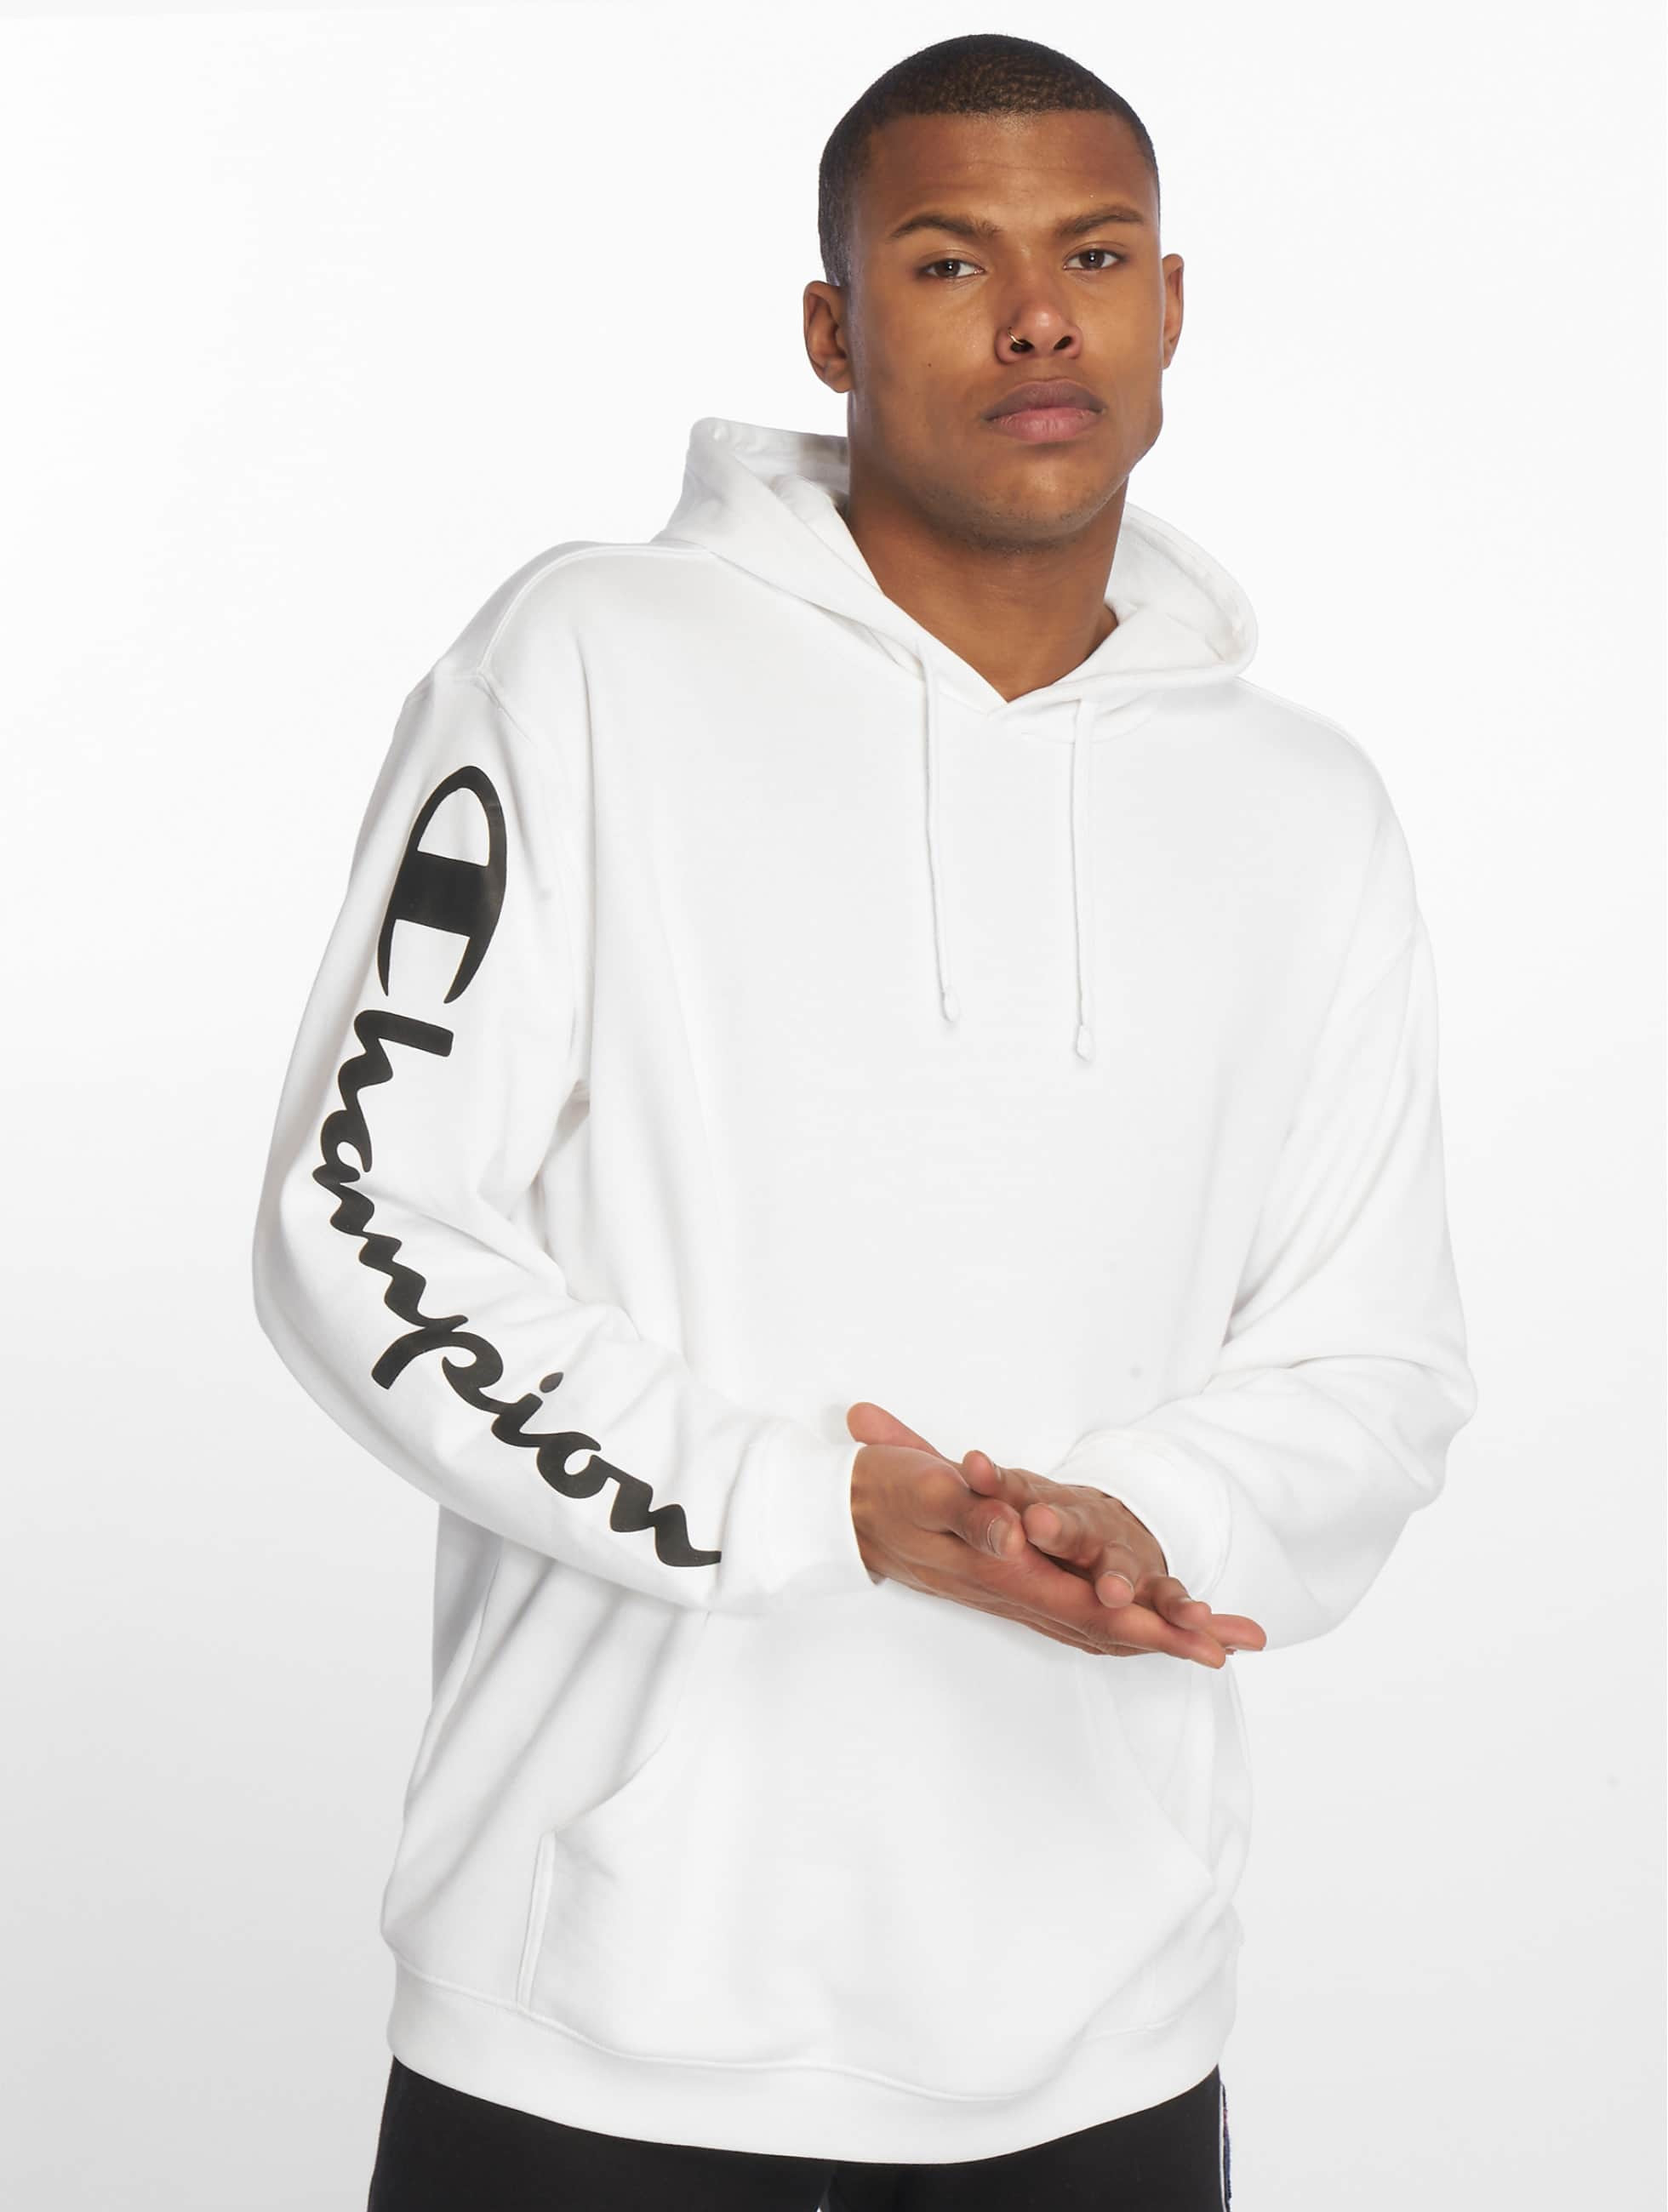 Champion Hooded Sweatshirt Hooded Sweatshirt White Champion Hooded White Champion c34AqSLR5j